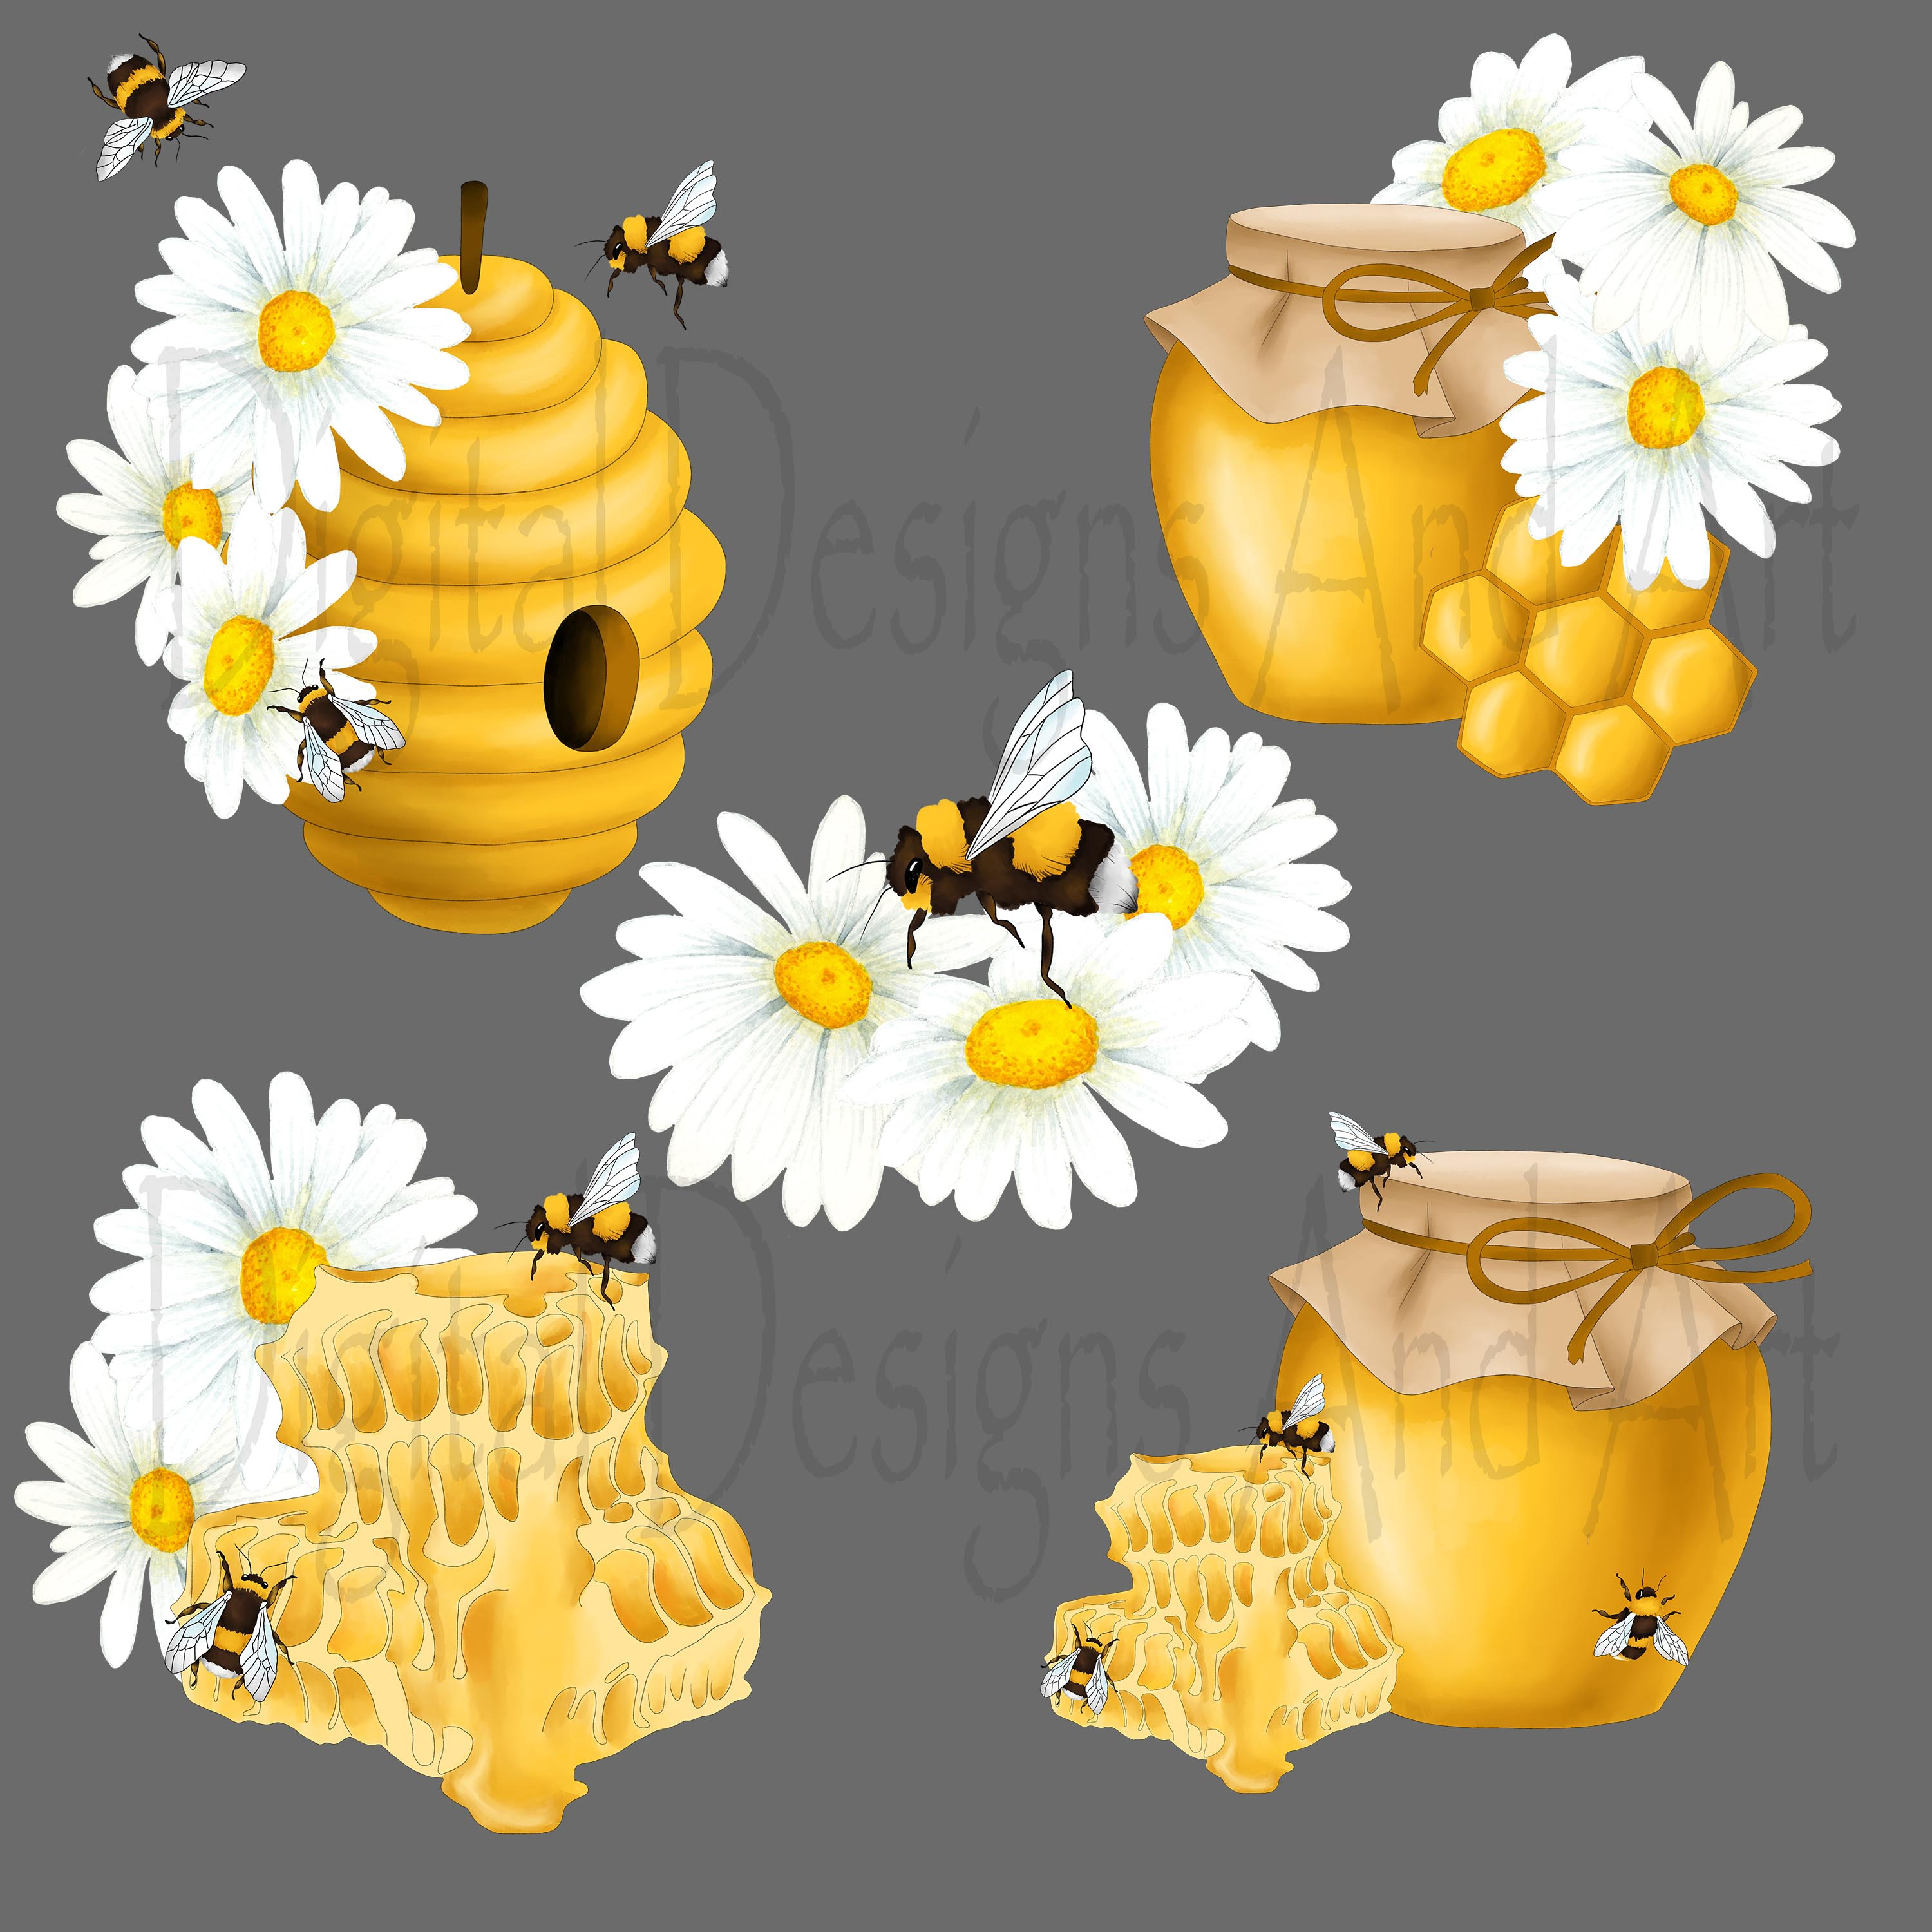 Honey bee clipart example image 5